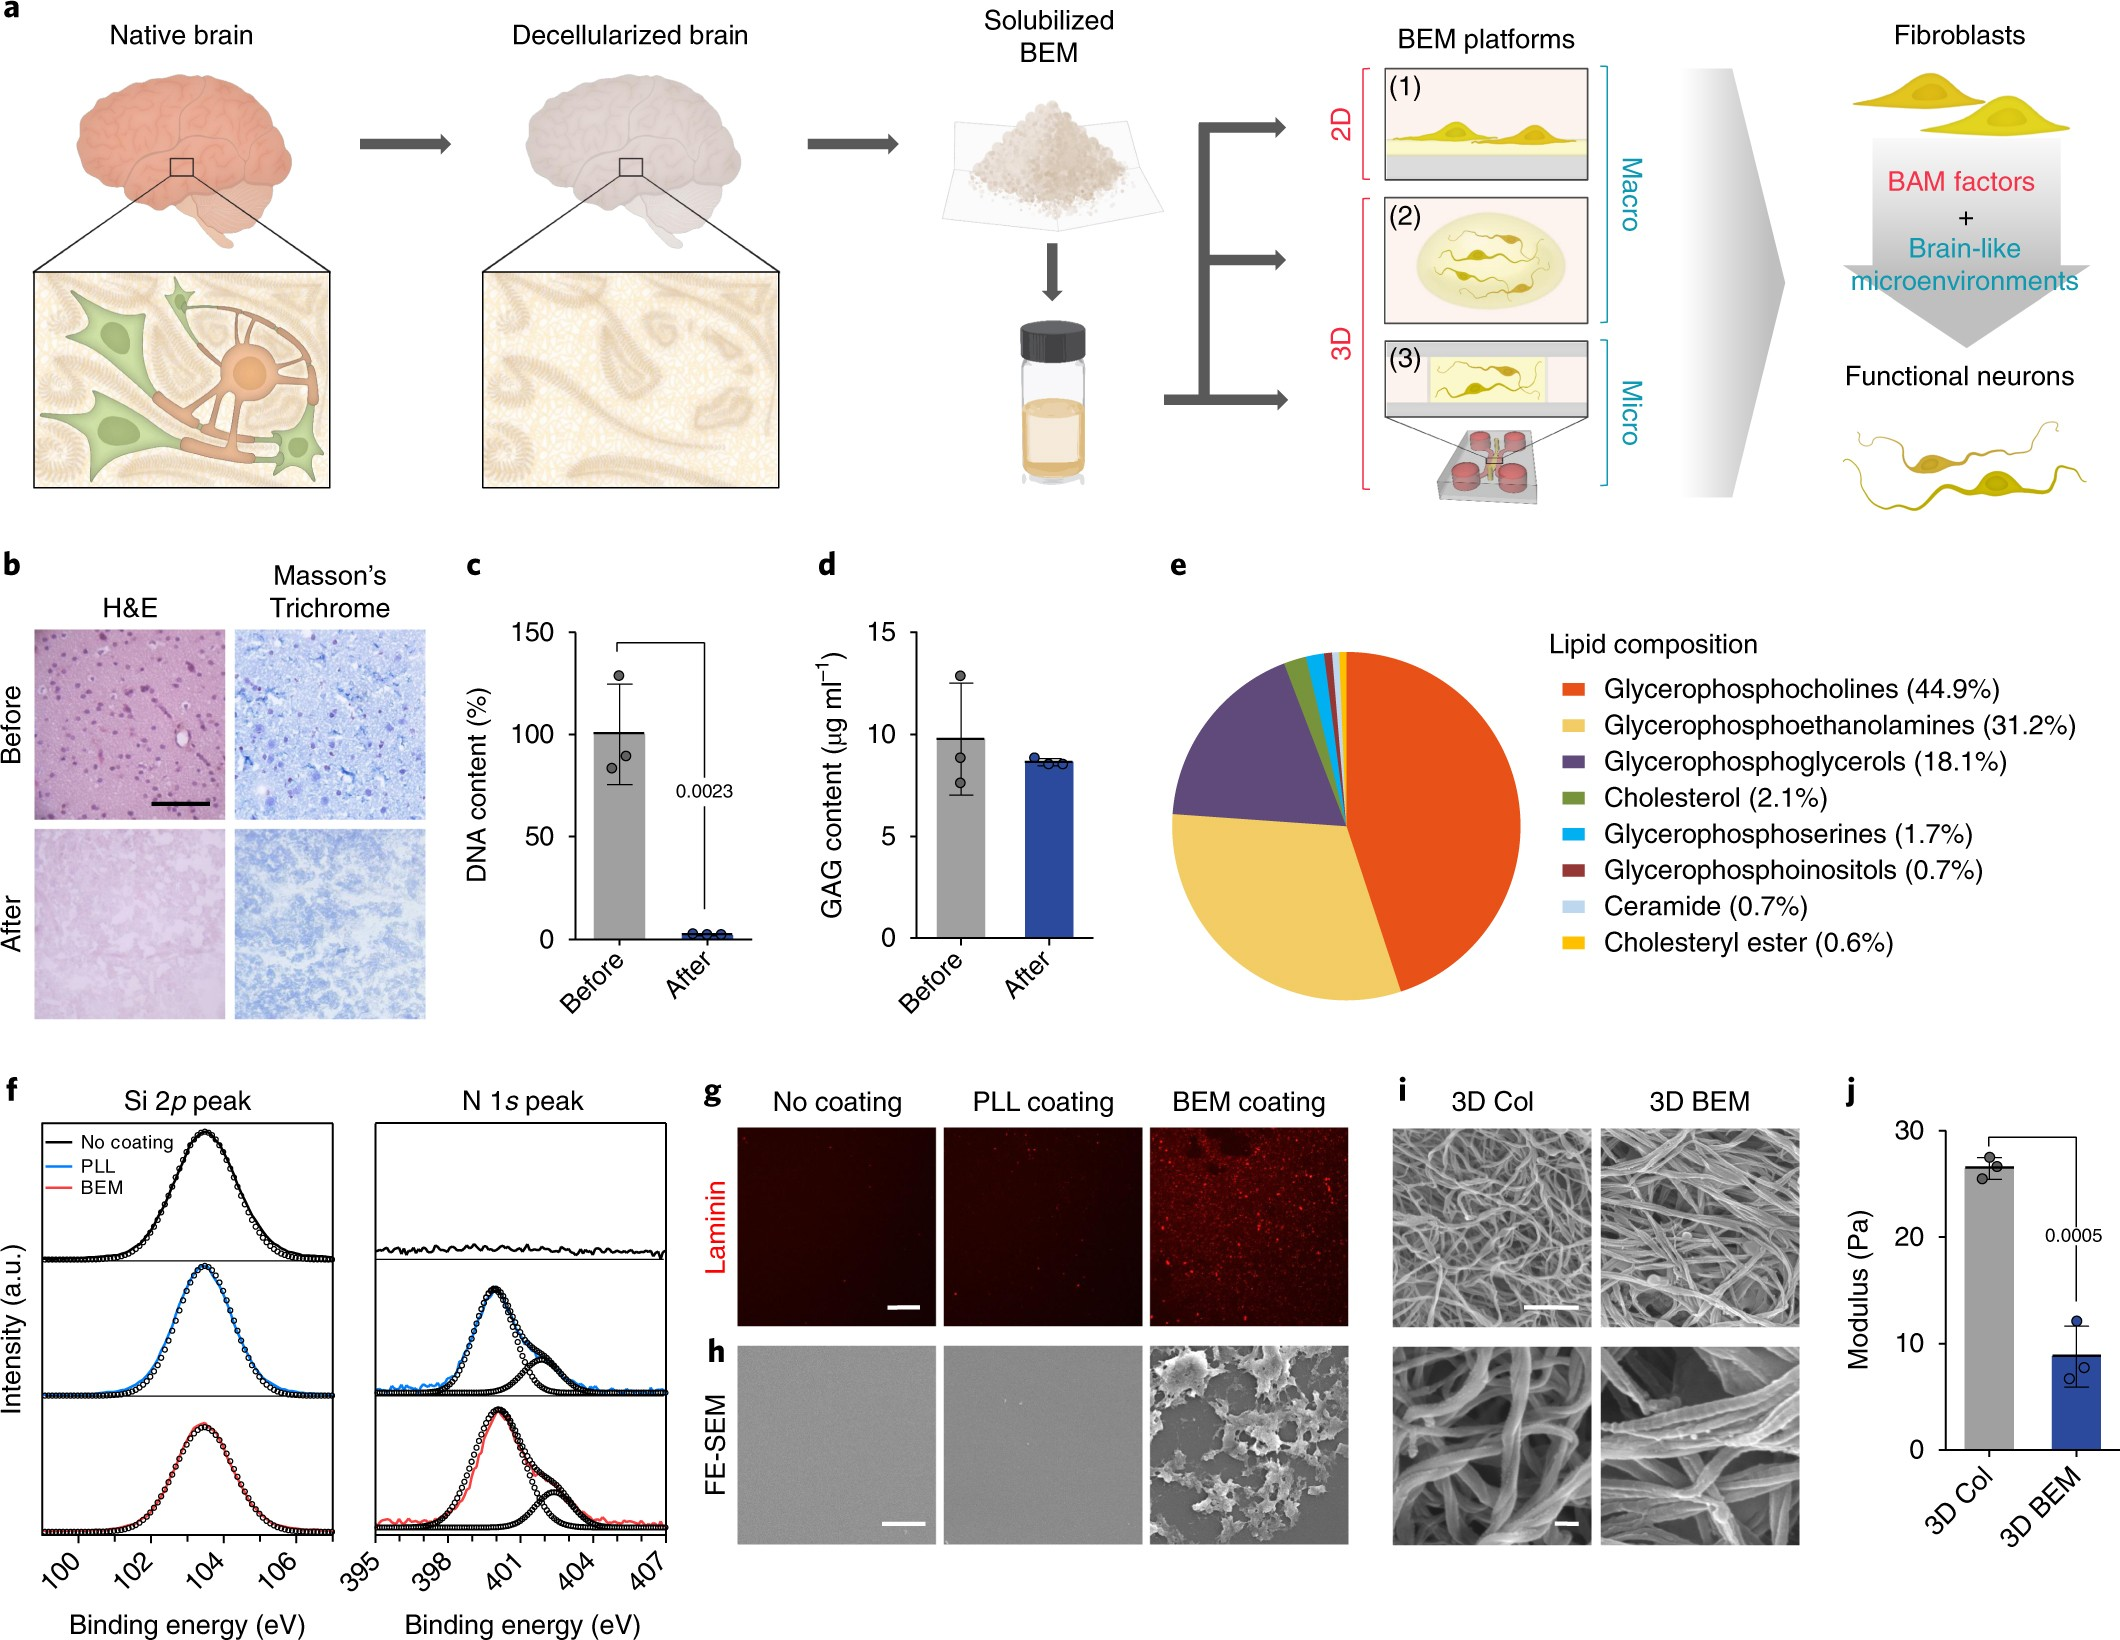 Three Dimensional Brain Like Microenvironments Facilitate The Direct Cable Tester Circuit Moreover Diagram Of A Schematic On Reprogramming Fibroblasts Into Therapeutic Neurons Nature Biomedical Engineering